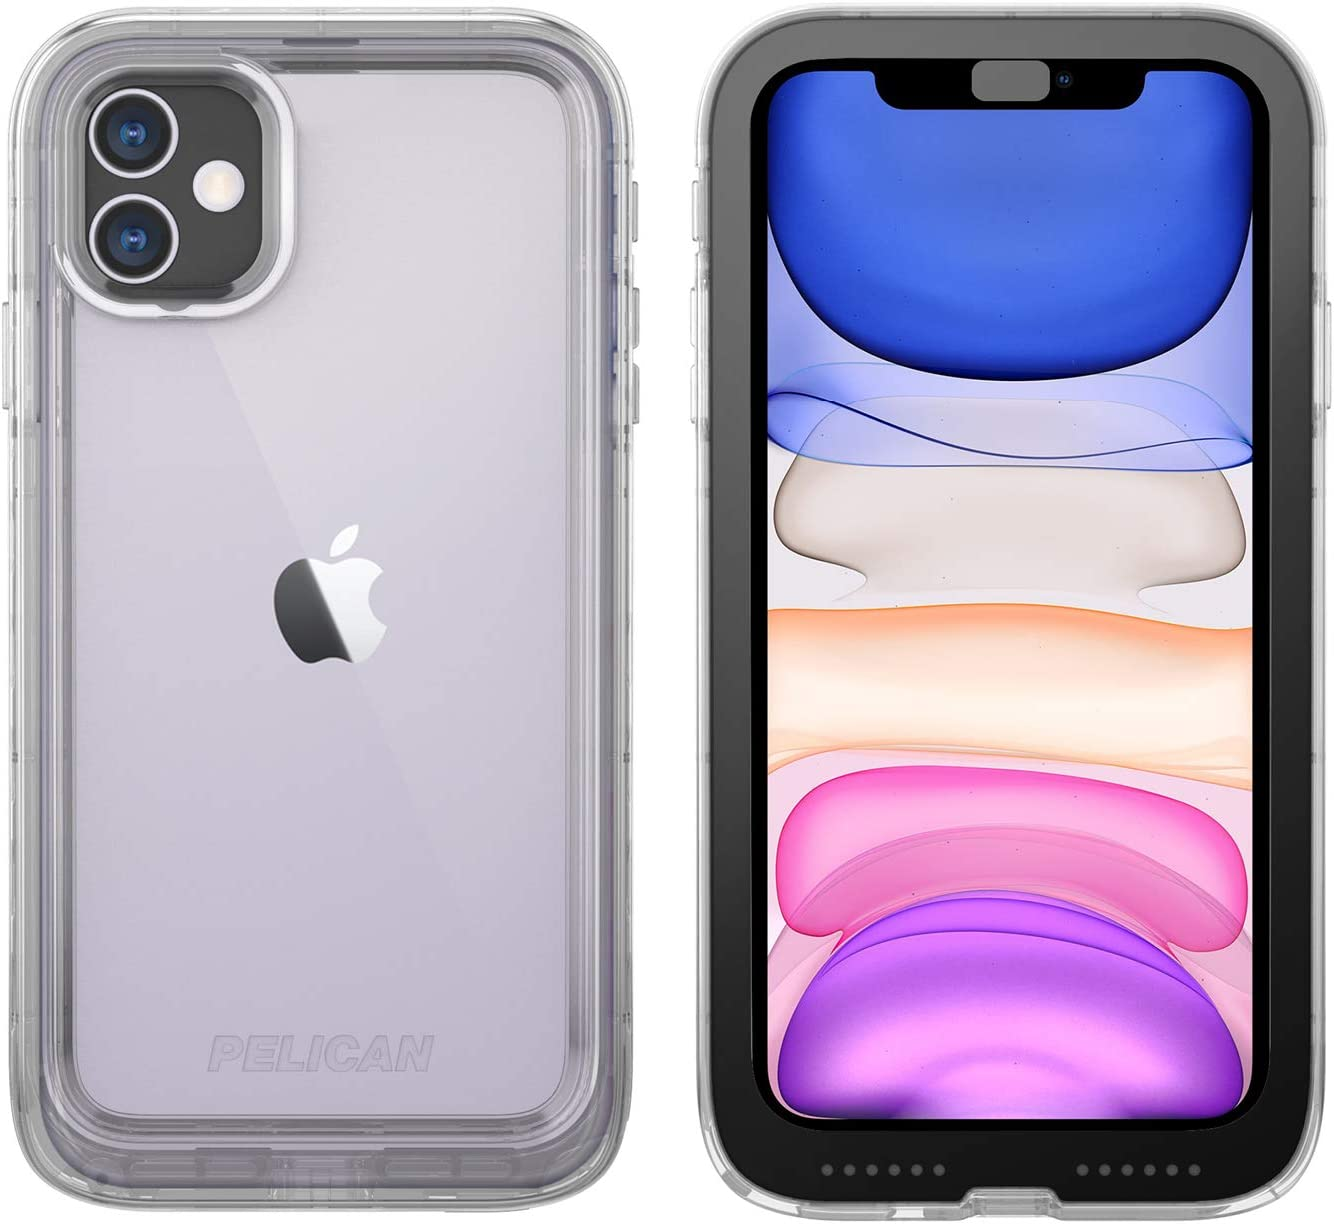 Pelican iPhone 11 Case, Marine Case - Military Grade Drop Tested – TPU, Polycarbonate, Liquid Silicon Protective Case for Apple iPhone 11 (Clear), C56040-001A-CLBC